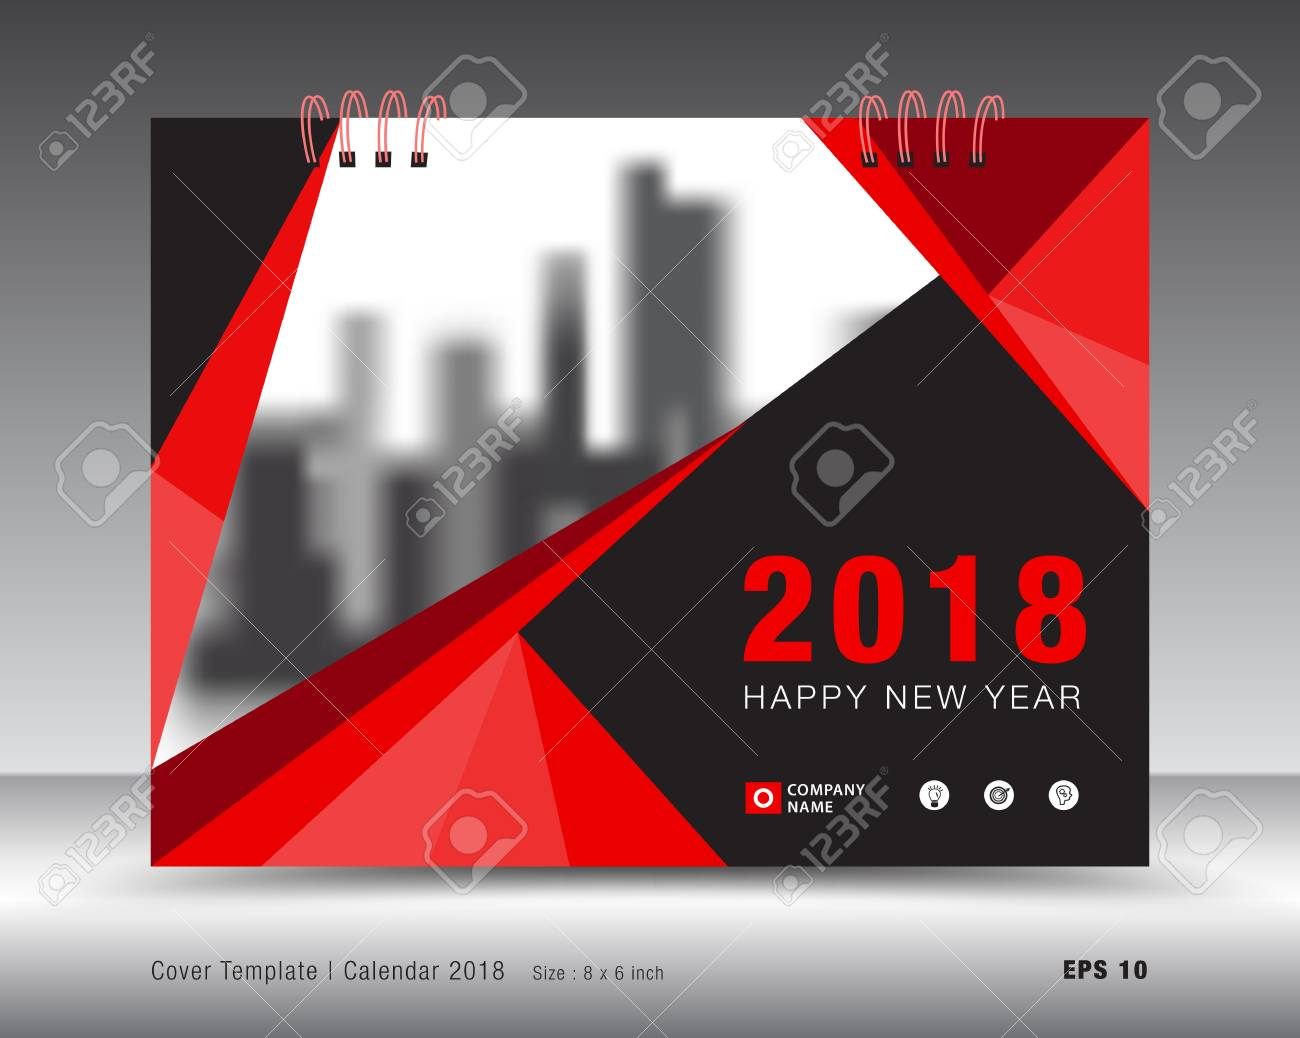 Cover calendar 2018 template, Red cover business brochure flyer